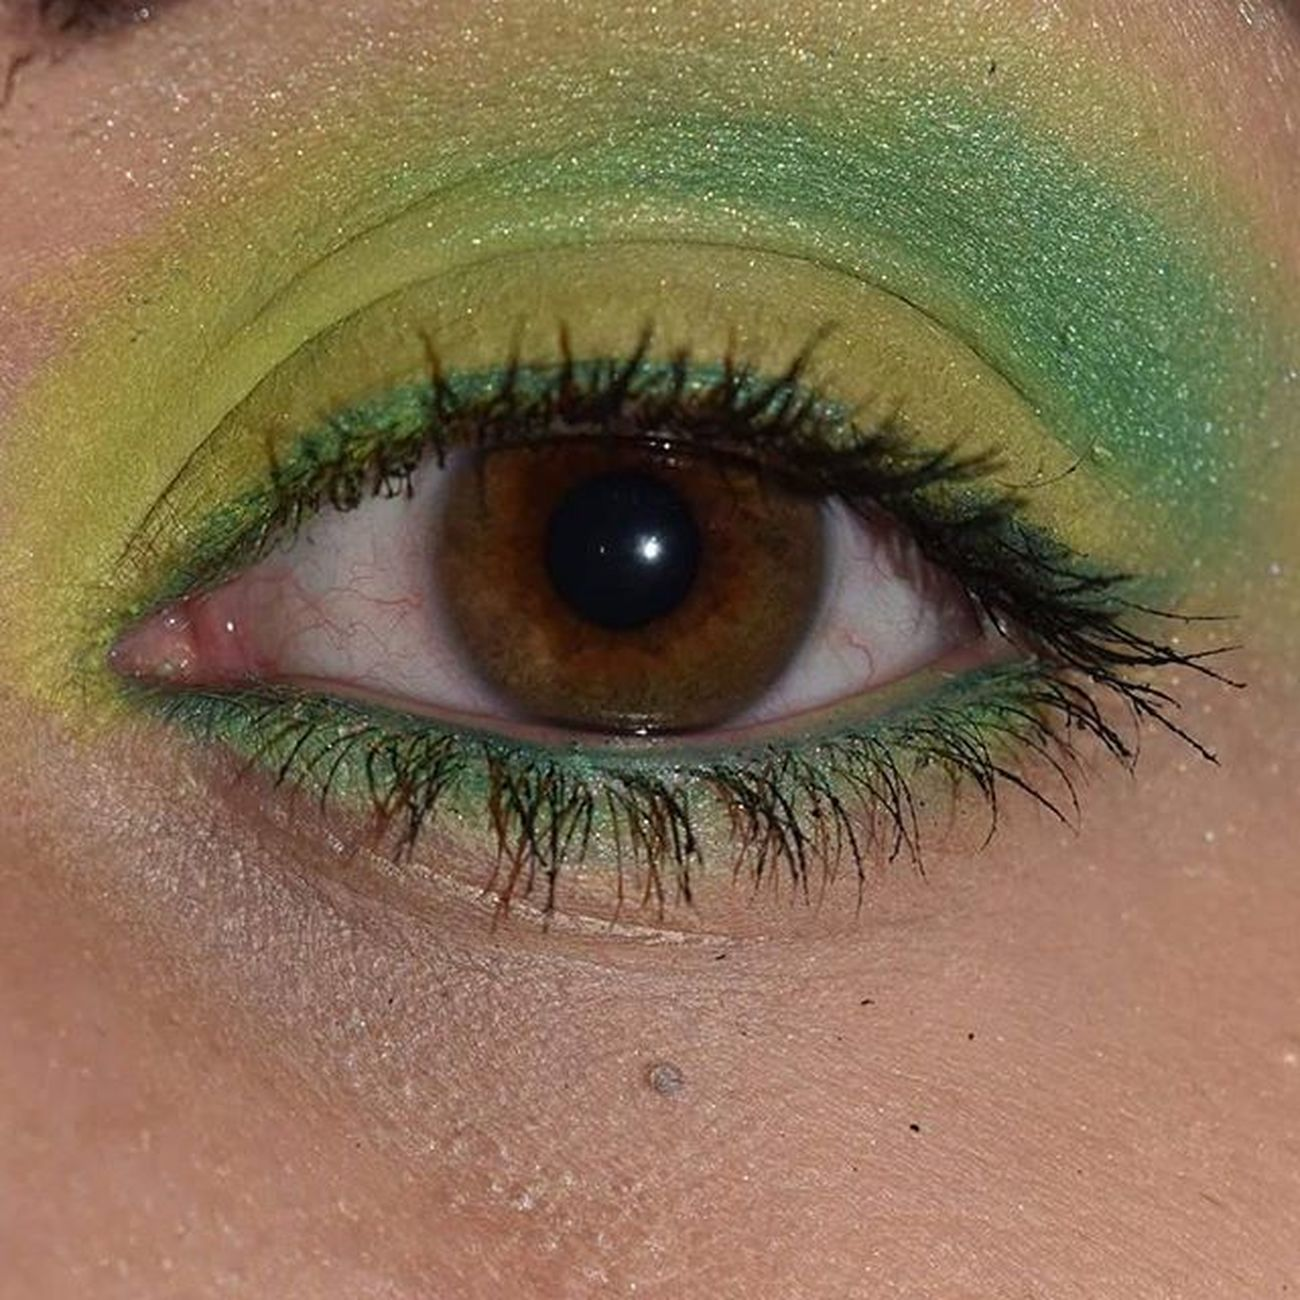 Mein Amu zur Blogparade Traveltheworld Thema war Brasil mehr dazu auf meinen Blog. @makeuprevolution Makeuprevolution Colourchaos Eyeslikeangels Eyesmakeup Makeupartist Makeupaddict Blogger Beautyblogger Makeupblogger Beautyblogger_de Yellowgreen Augenmakeup